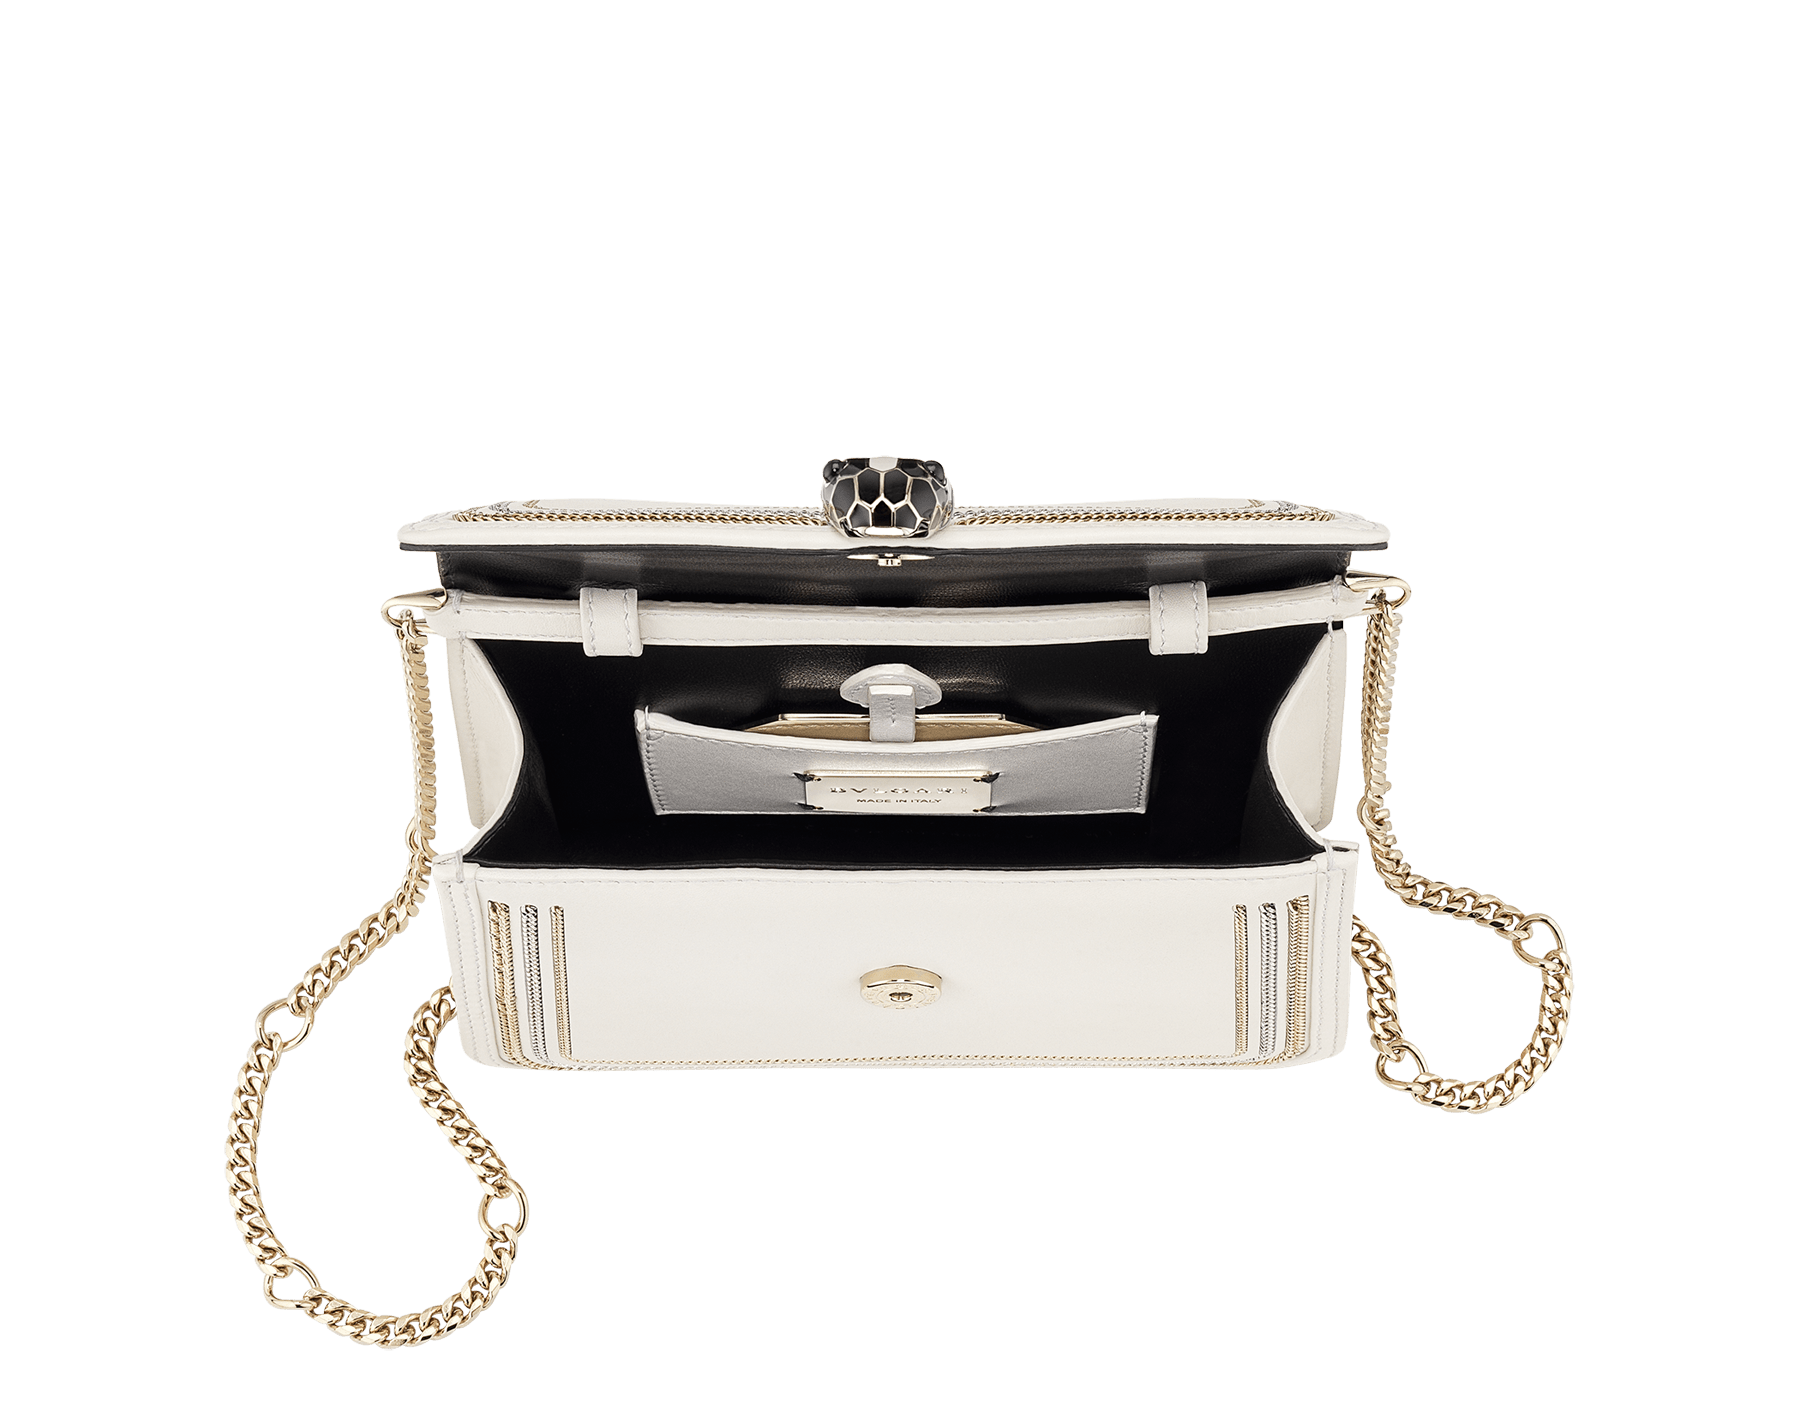 """Serpenti Diamond Blast"" crossbody mini bag in black smooth calf leather, featuring a 3-Chain motif in light gold and palladium finishing. Iconic snakehead closure in light gold plated brass enriched with black and white enamel and black onyx eyes. 987-3CFCL image 4"